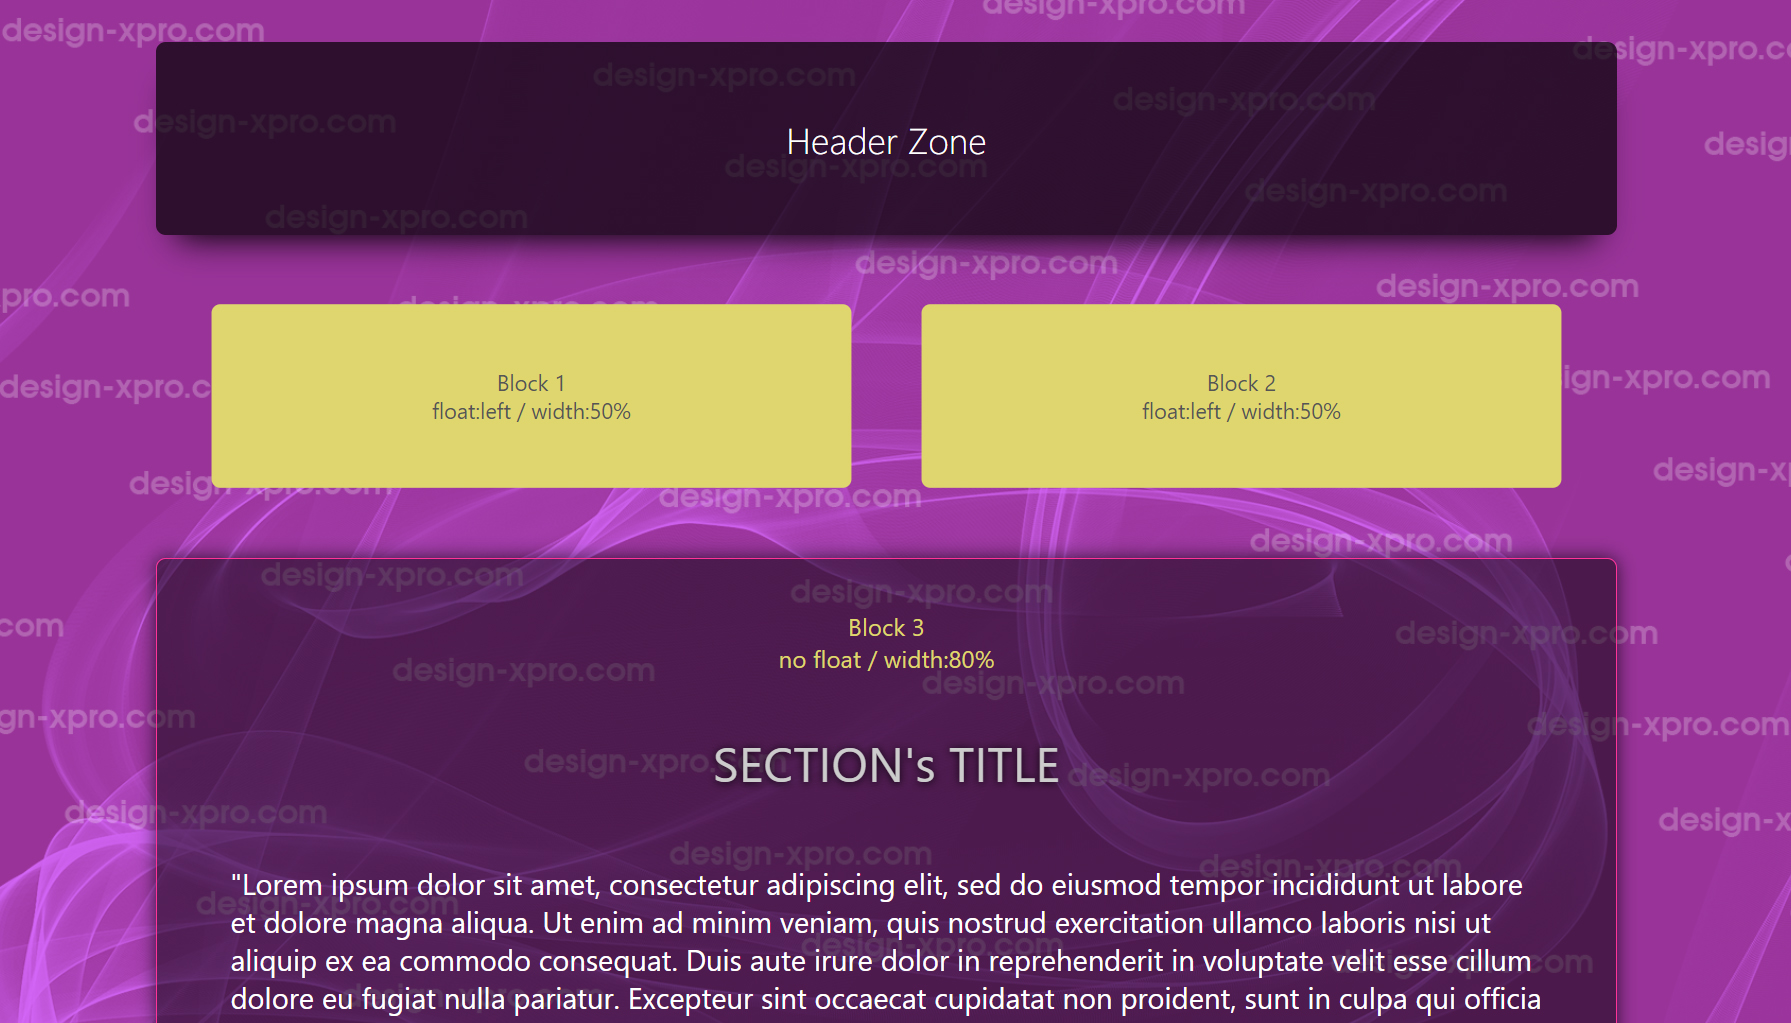 Custom Chaturbate layout with fixed background image - Code Snippet #4 by Dan N